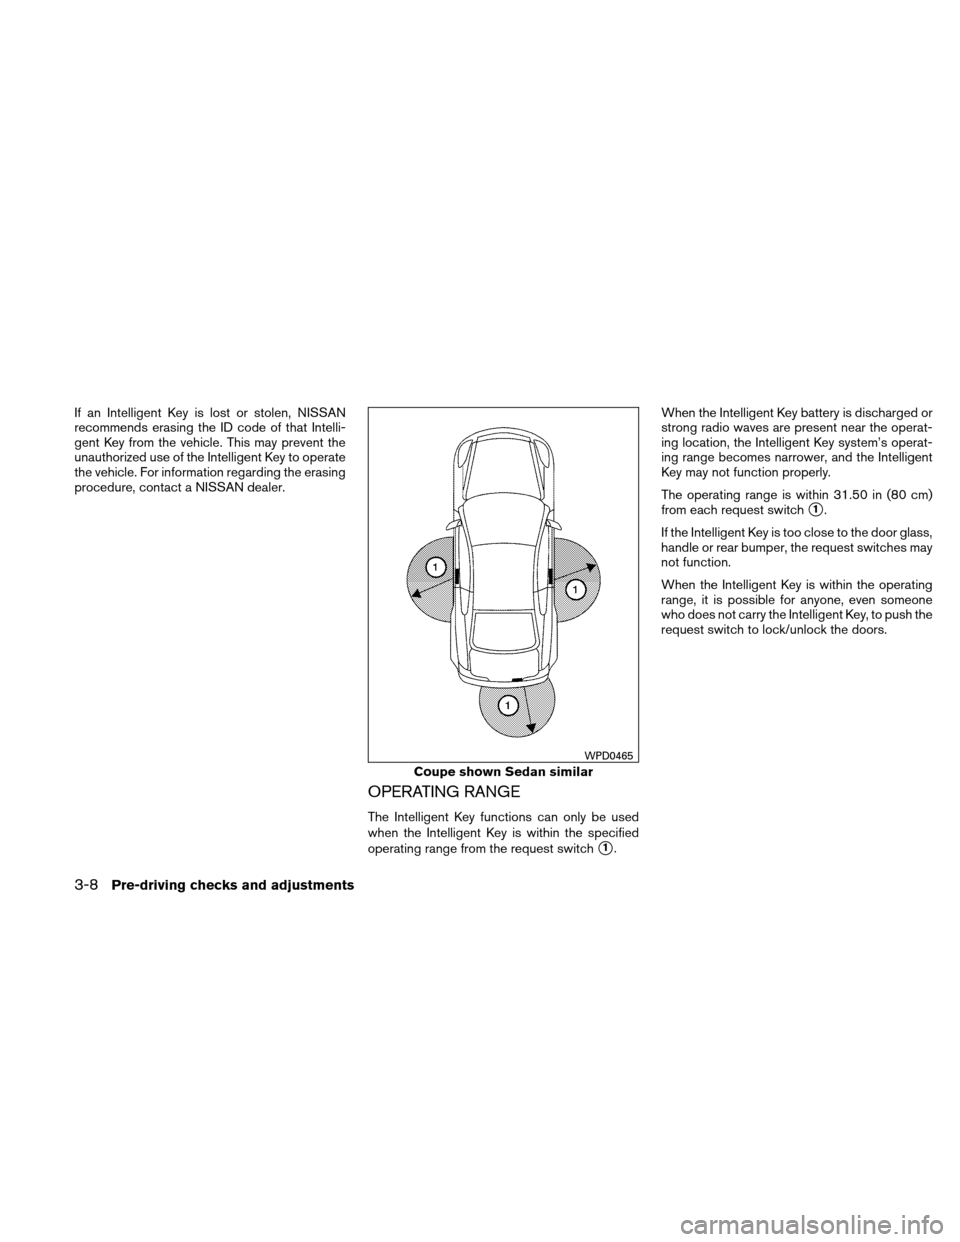 NISSAN ALTIMA COUPE 2011 D32 / 4.G Owners Manual, Page 143